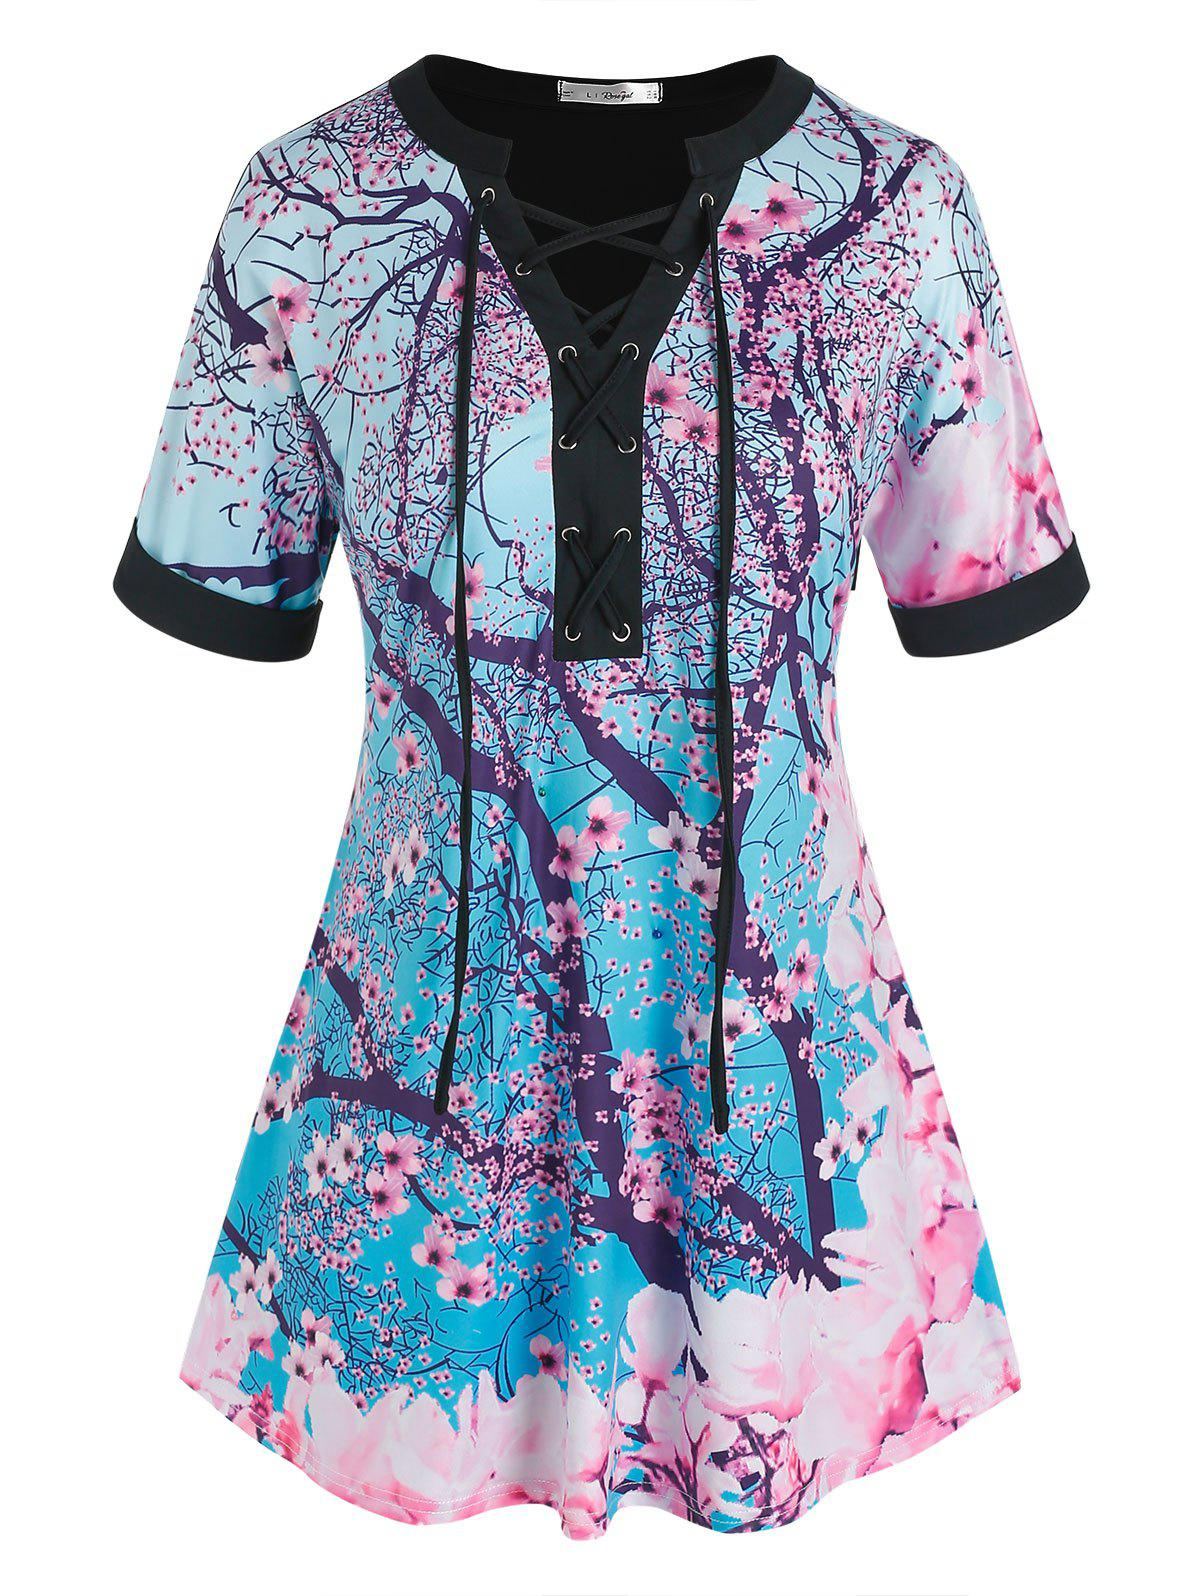 Plus Size Plum Blossom Lace-up Tunic Tee - multicolor 5X